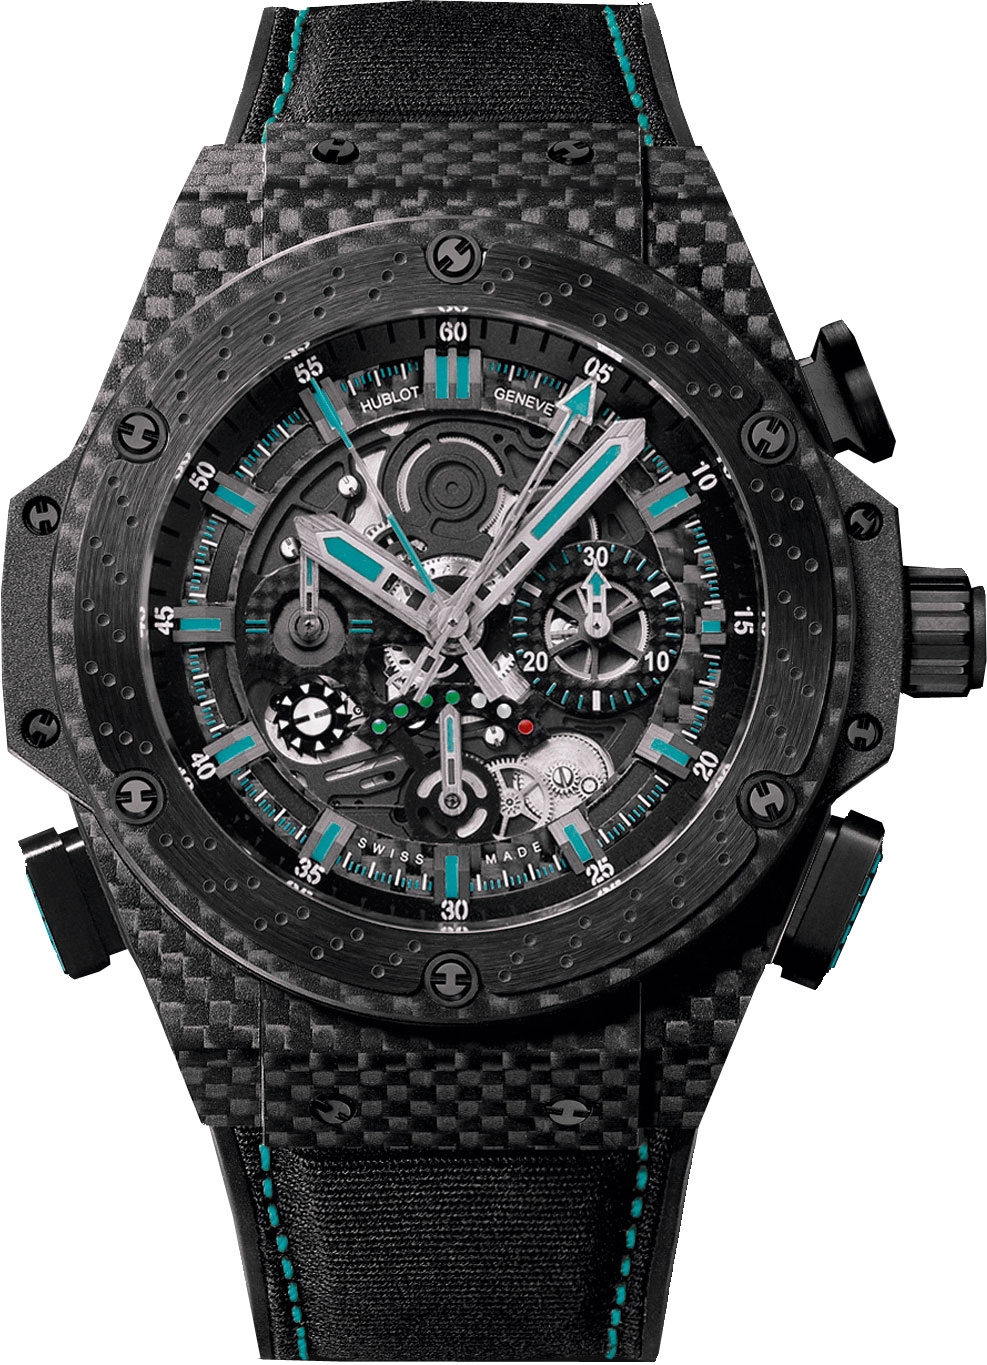 Hublot Big Bang King Power F1 Abu Dhabi Mens Watch